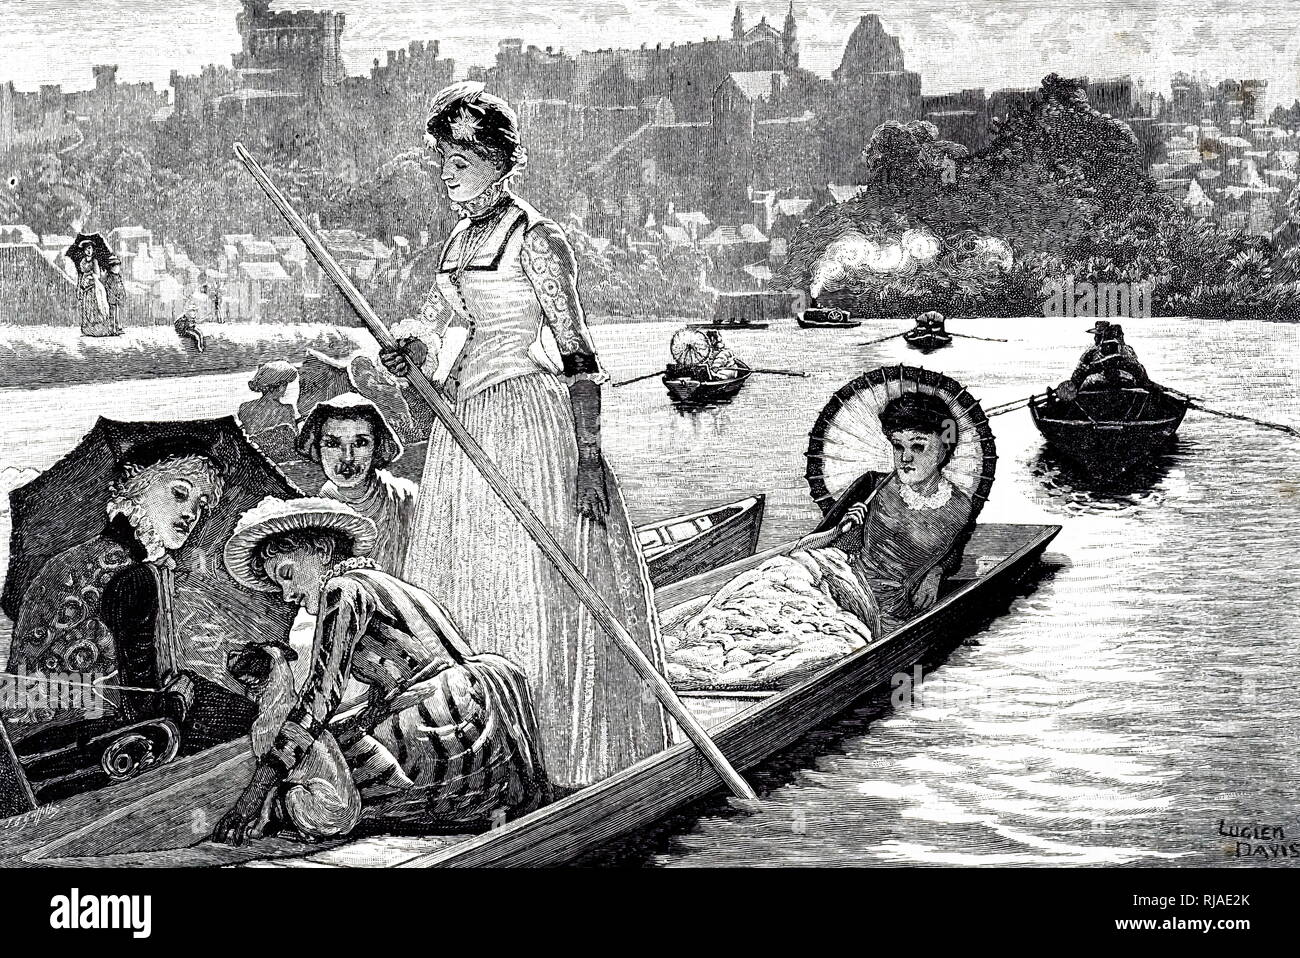 Illustration depicting 19th century, punting on an English river 1885 - Stock Image